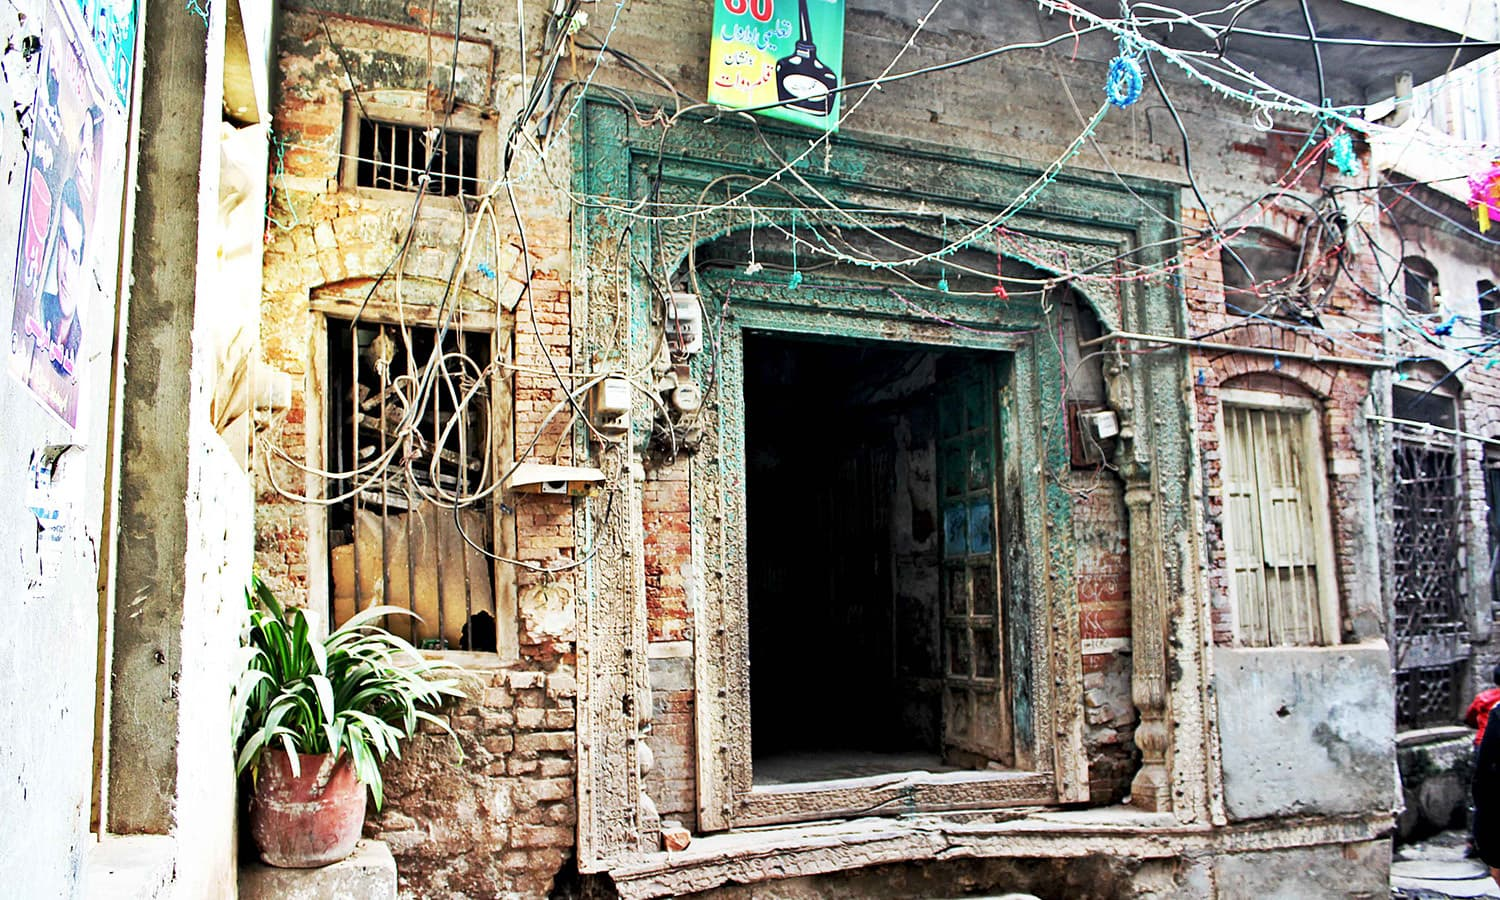 A decorated wooden door in Mohallah Bhabra.